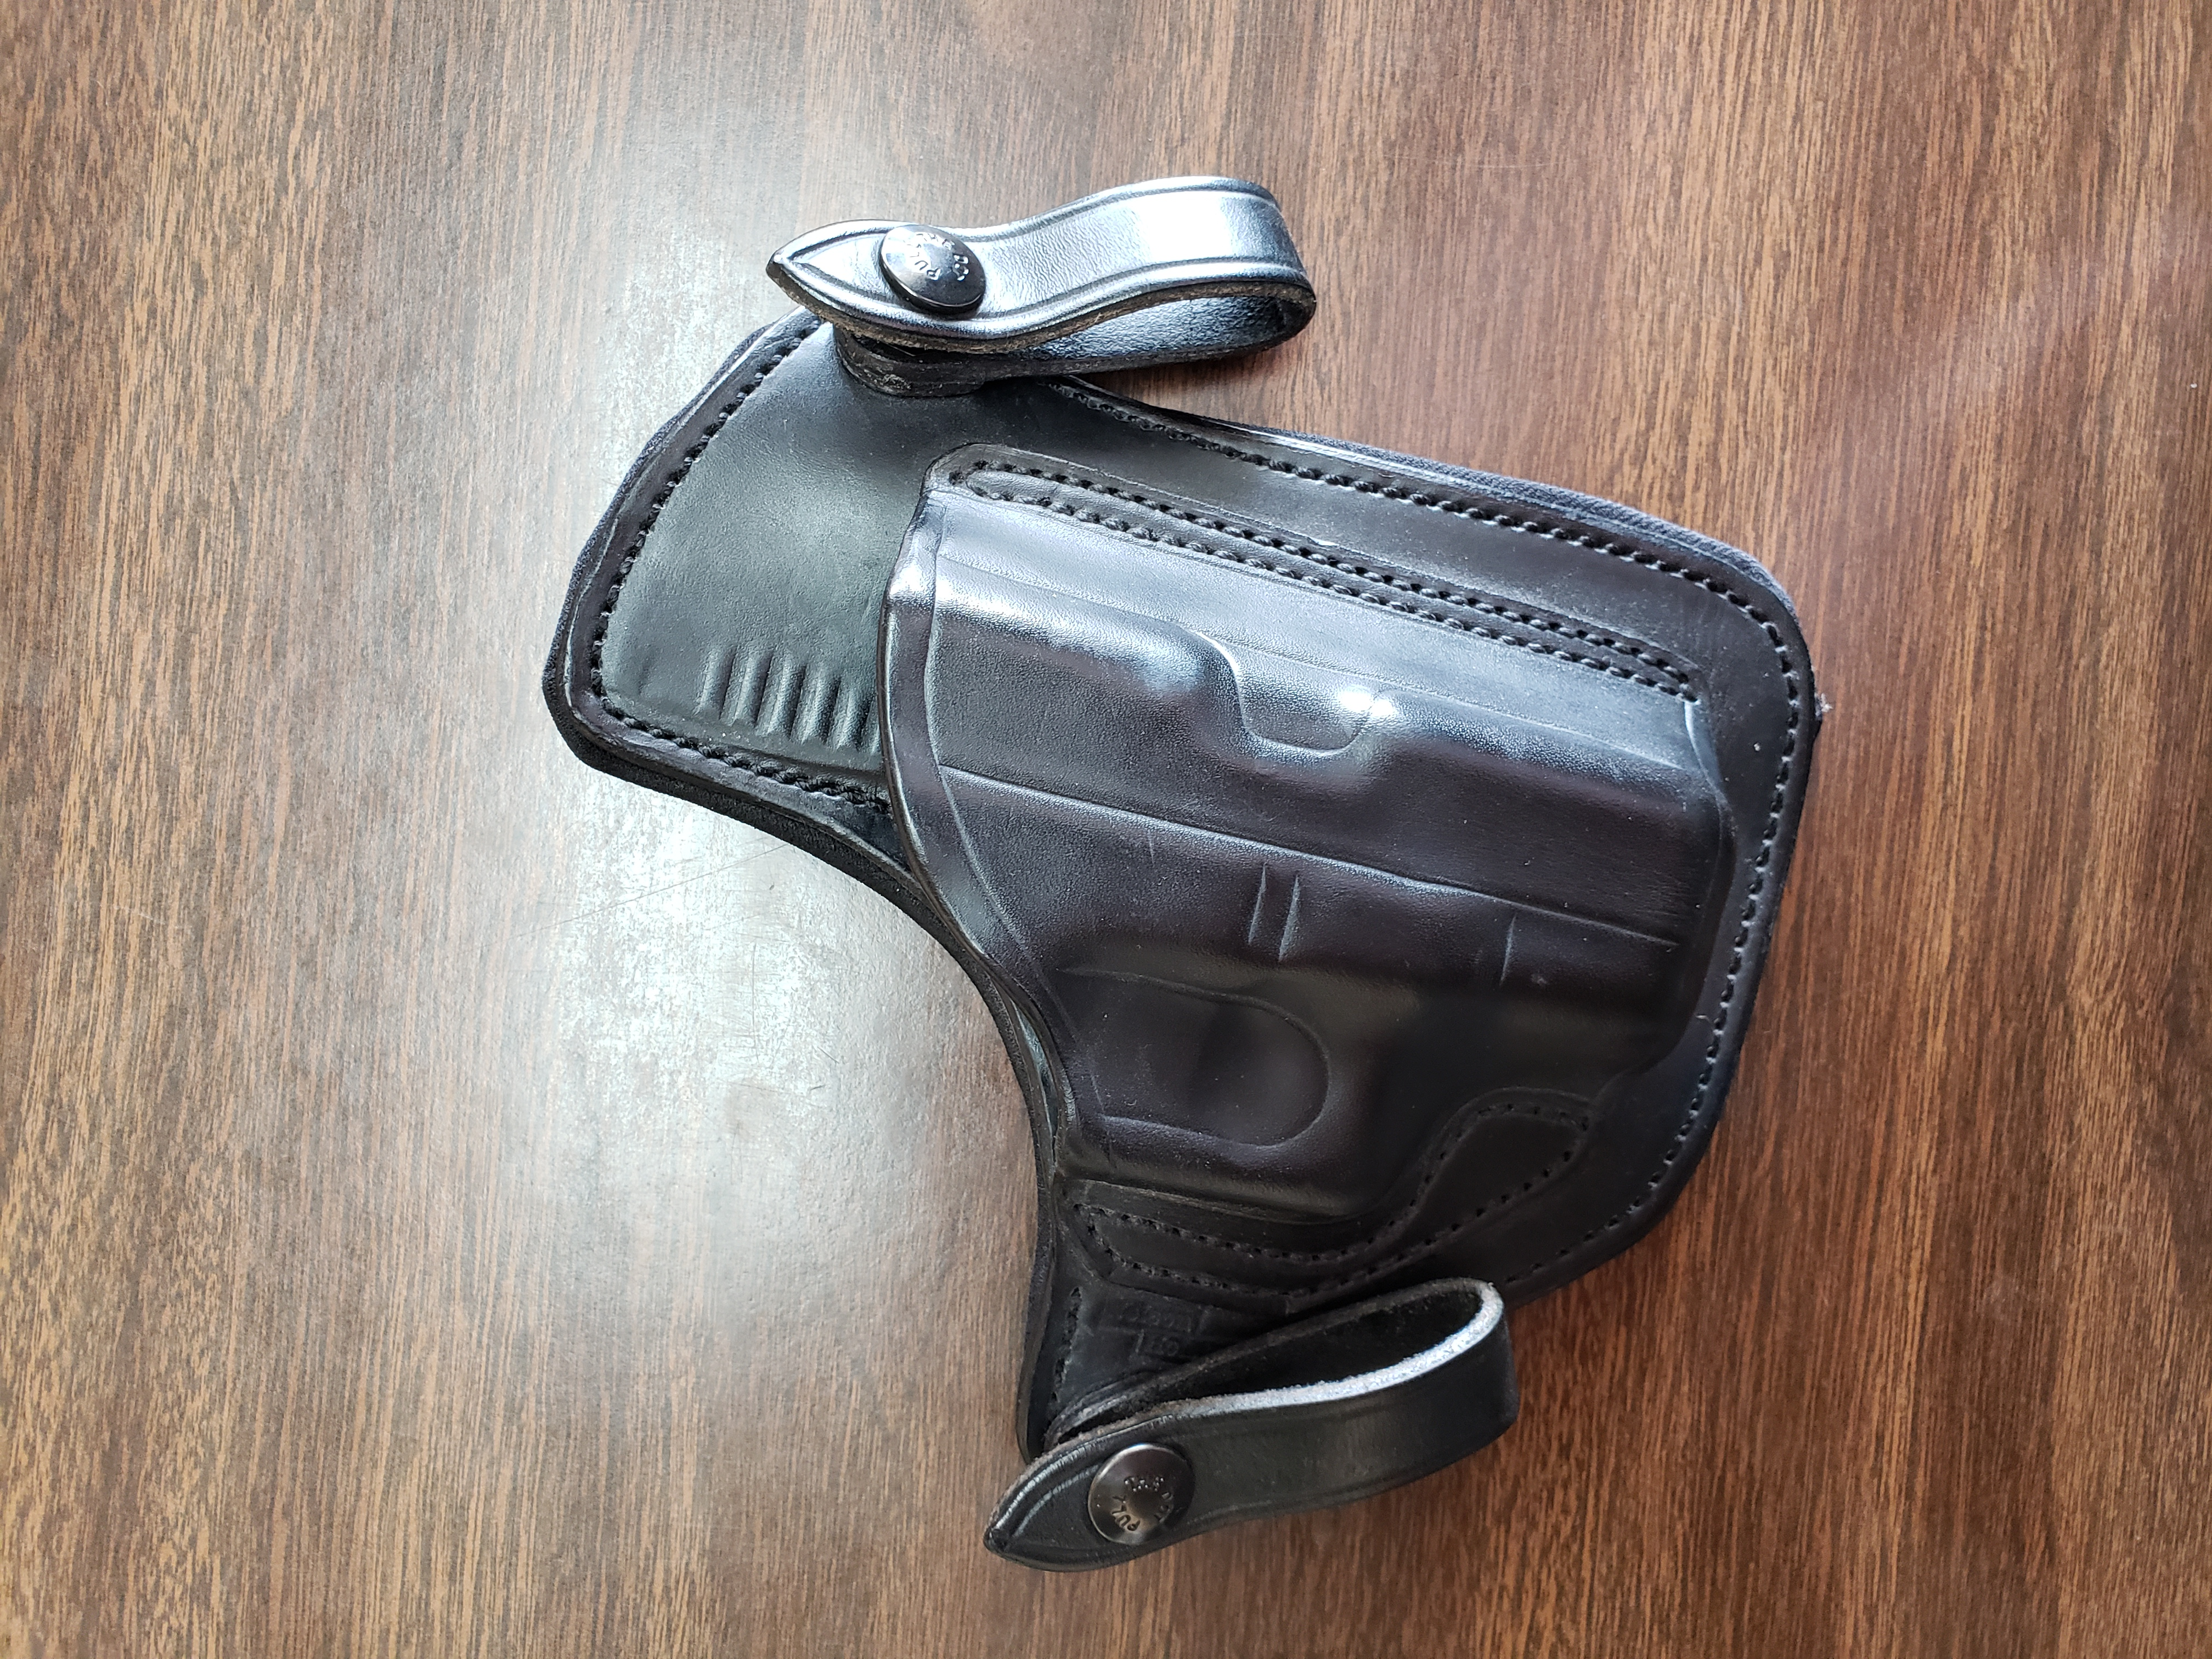 WTS Nelson Leather Glock 26 Holsters-20180926_111508_1537978872003.jpg